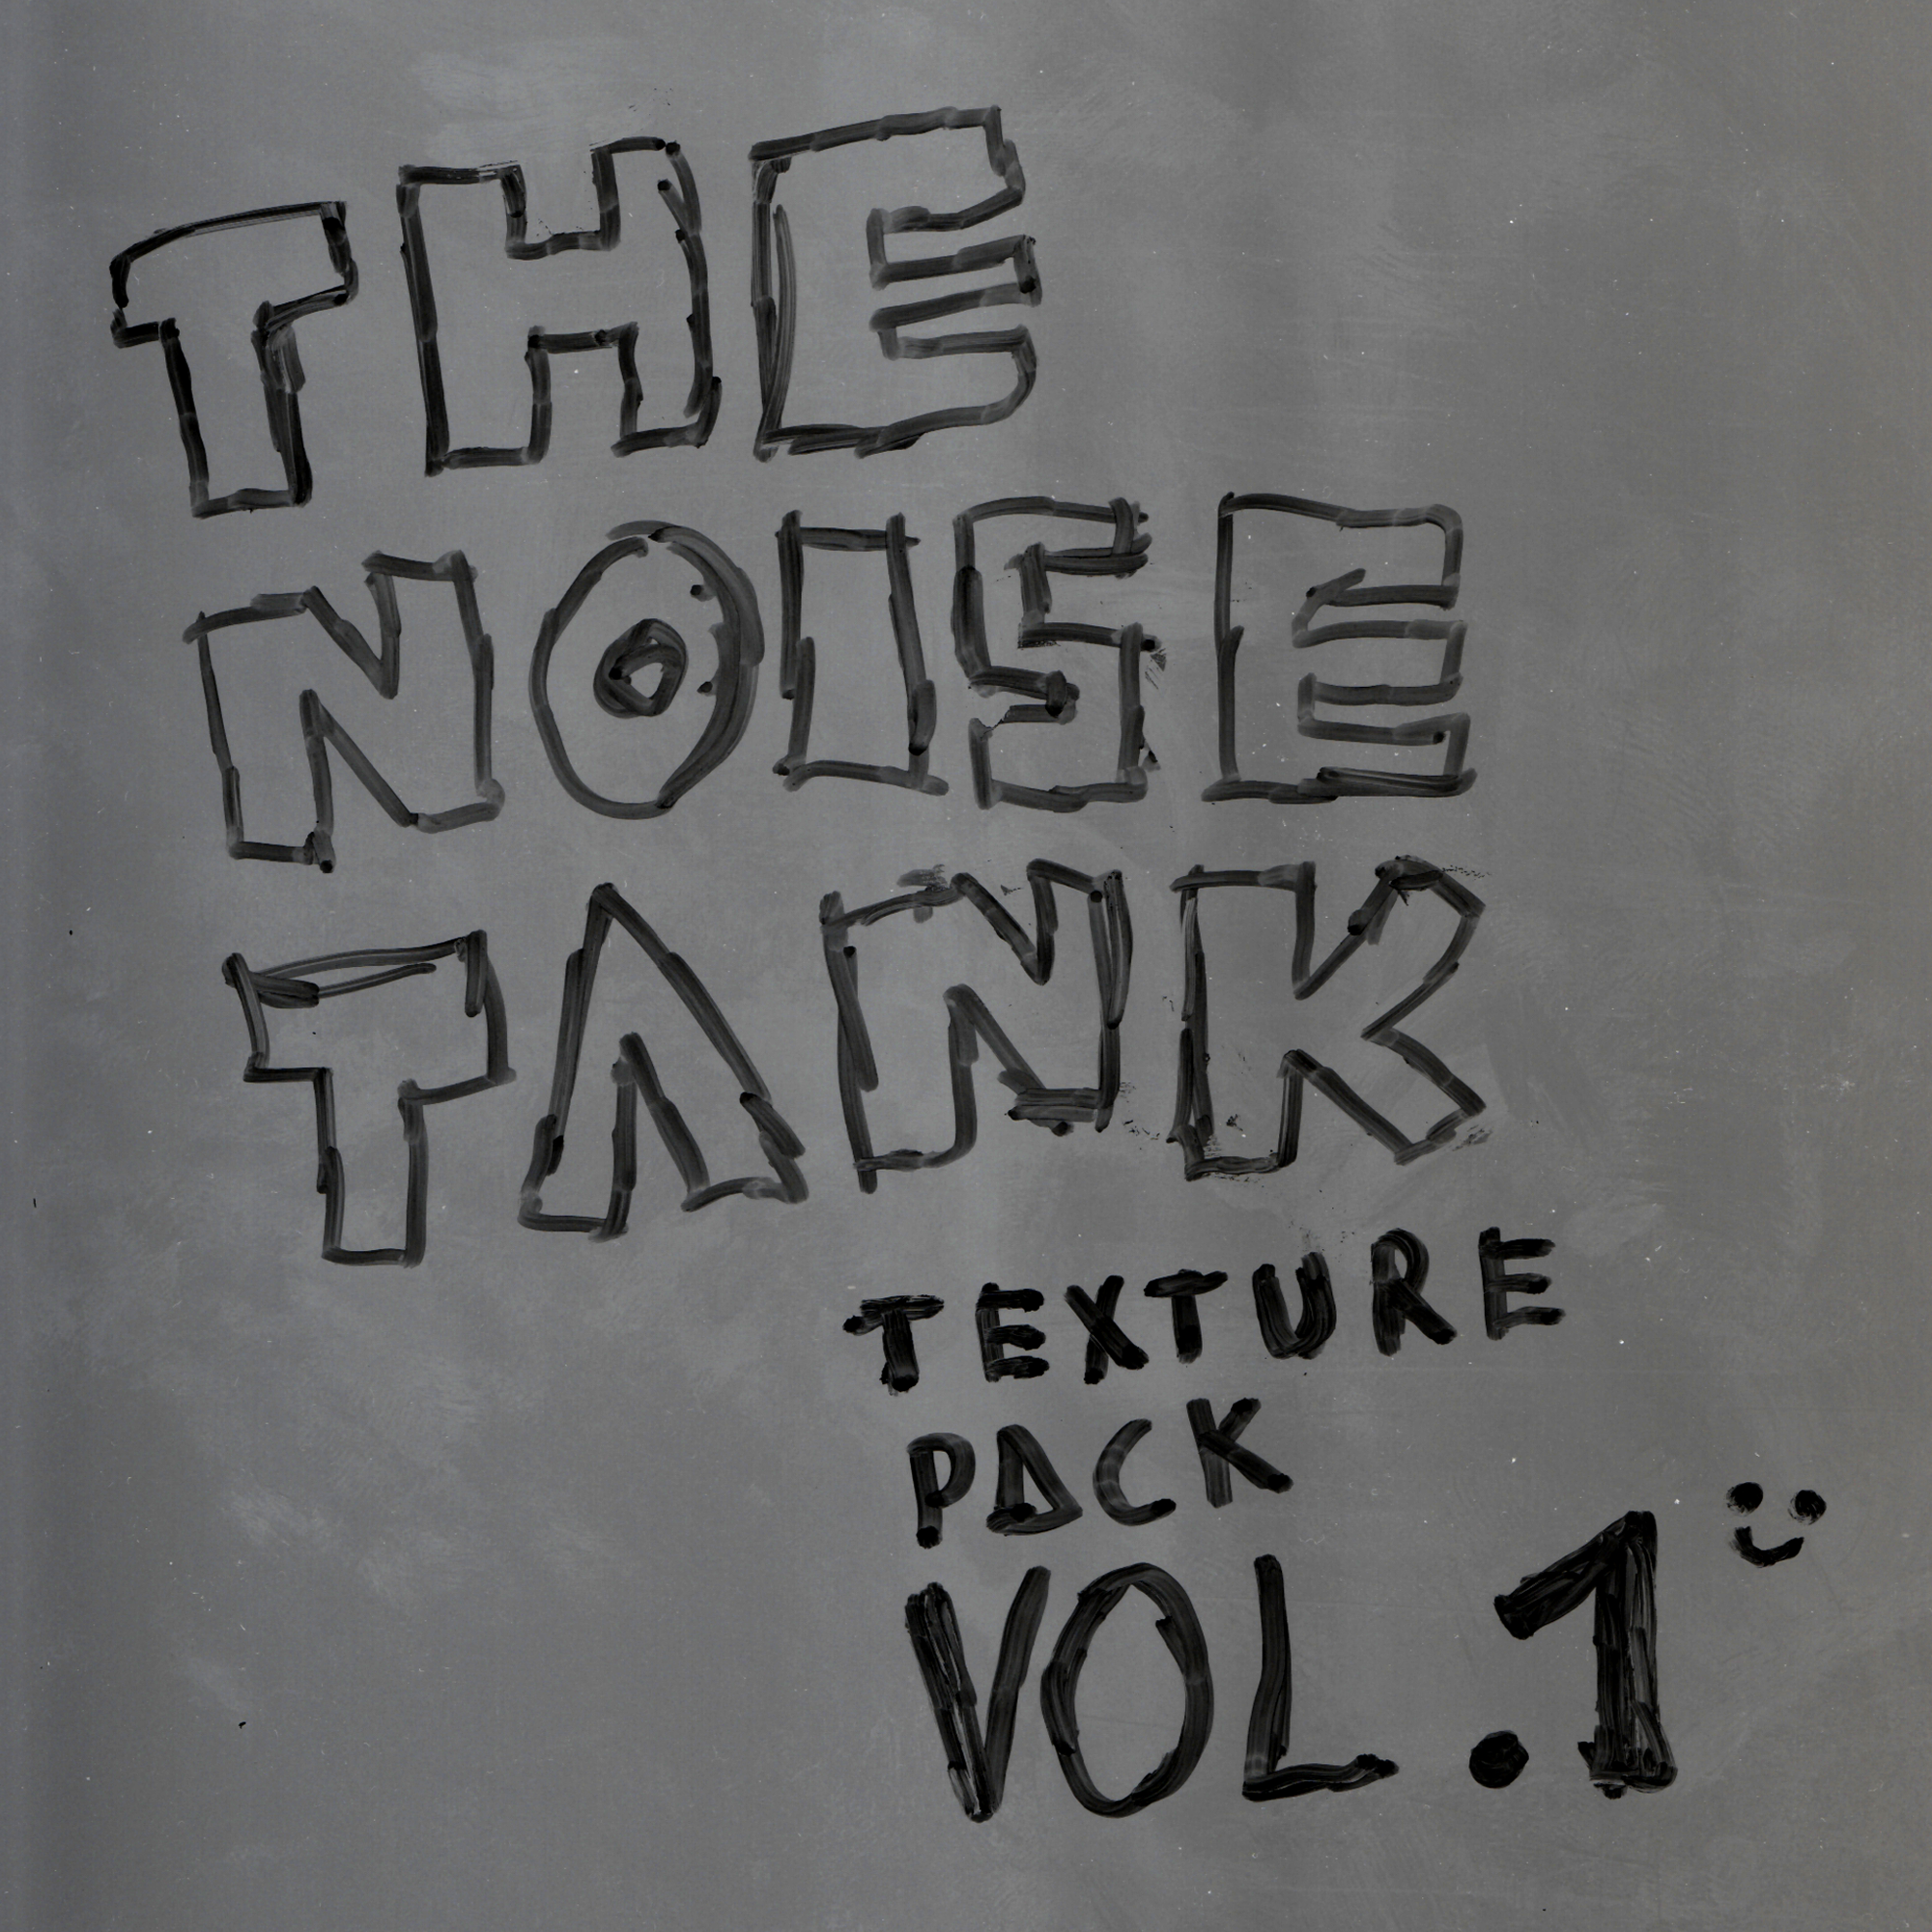 The Noise Tank Texture Pack:: VOL. 1 -